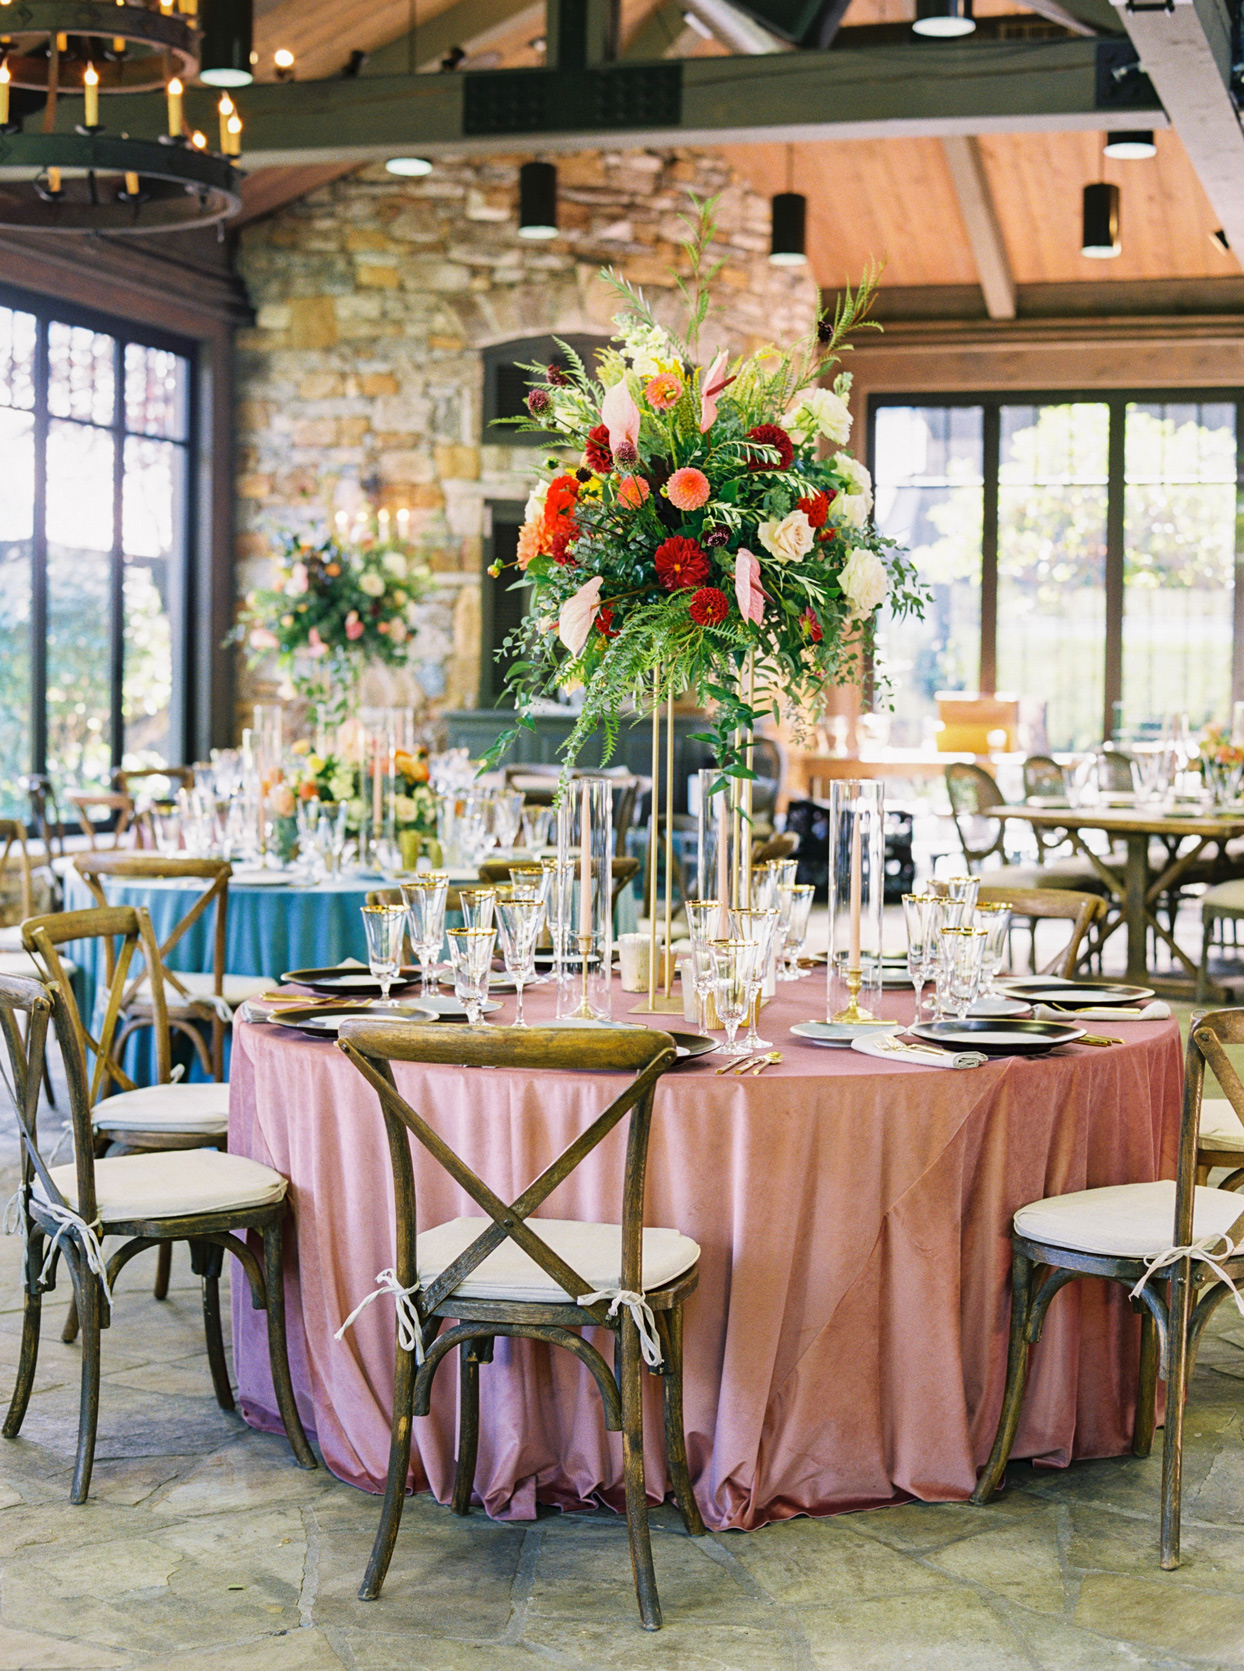 Round wedding tables with pink and blue table cloths